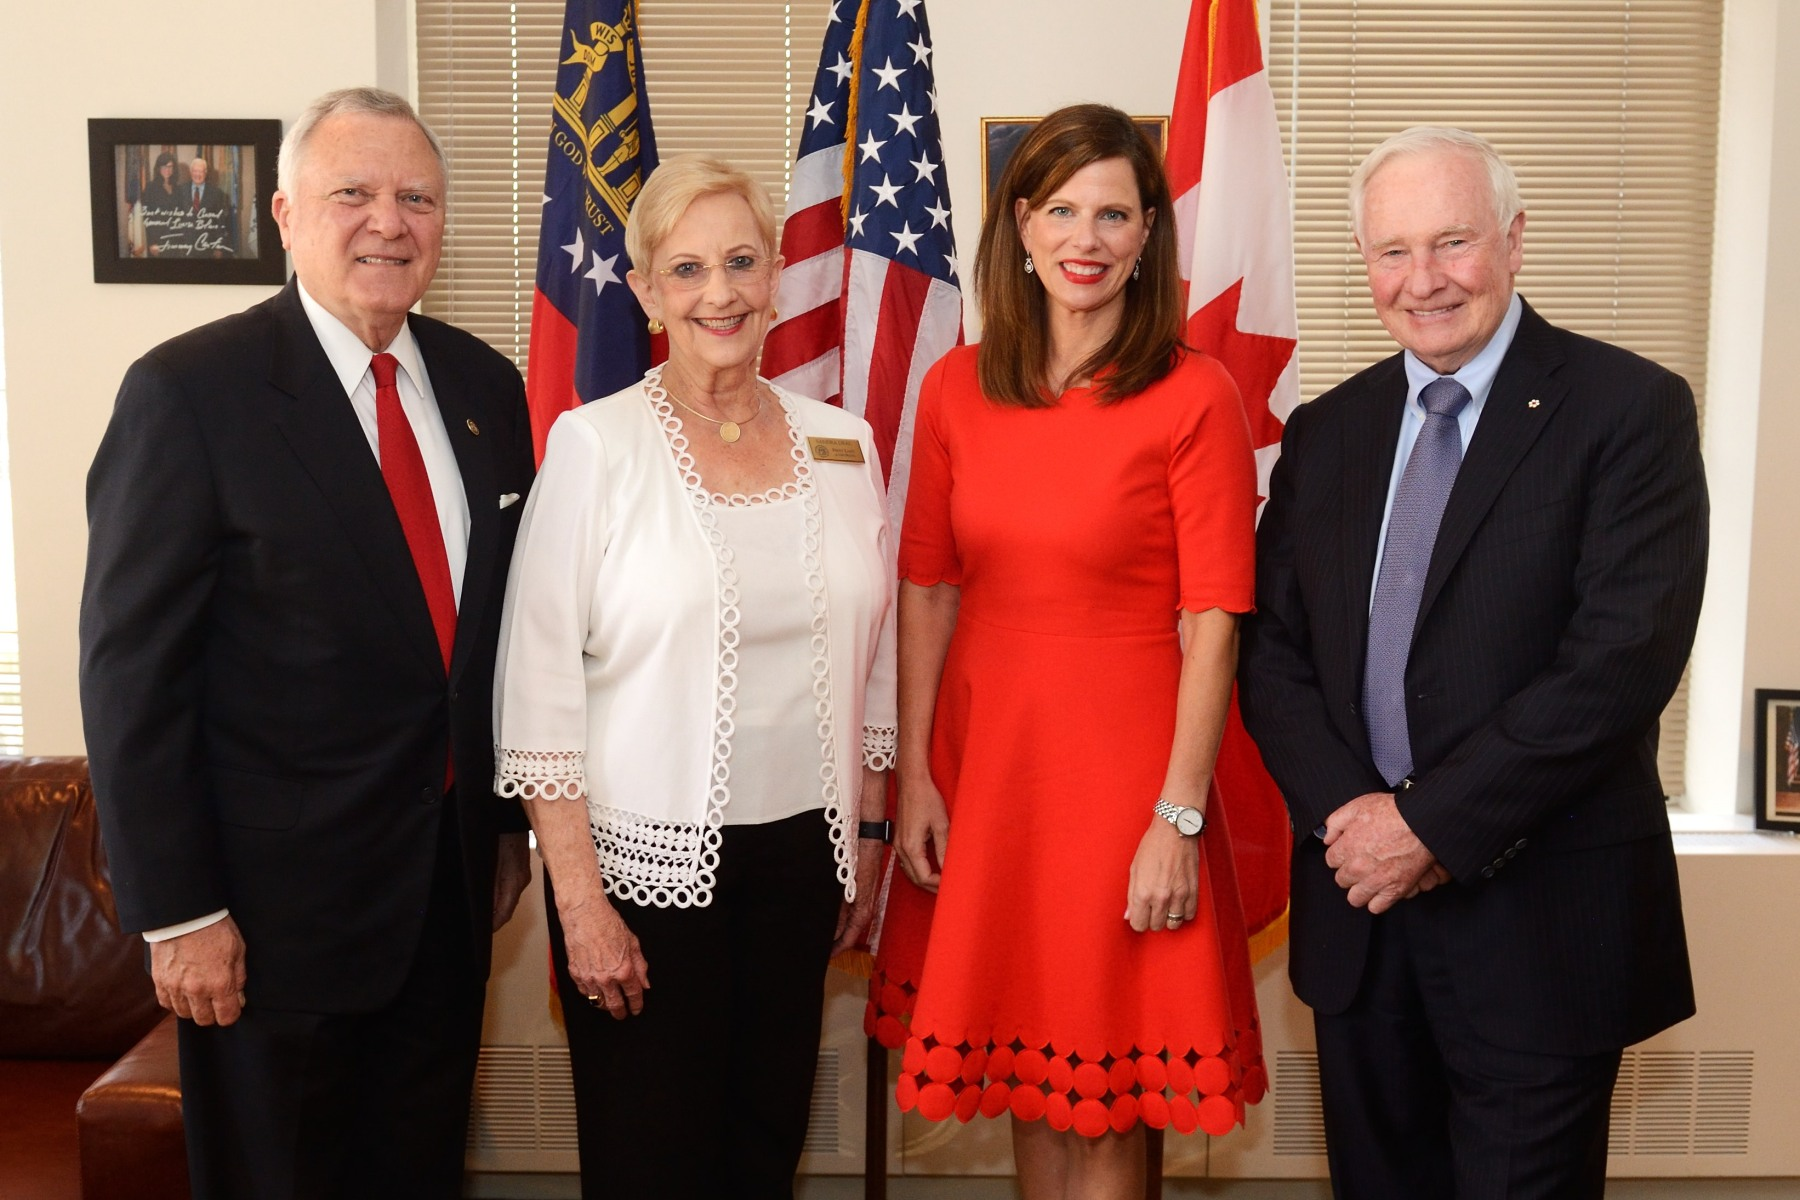 On the occasion of his visit to Atlanta, His Excellency met with the Honourable Nathan Deal, Governor of Georgia (far left), and his wife Mrs. Sandra Dunagan. The meeting was hosted by Mrs. Louise Blais, Consul General of Canada in Atlanta (right), on May 24, 2016.